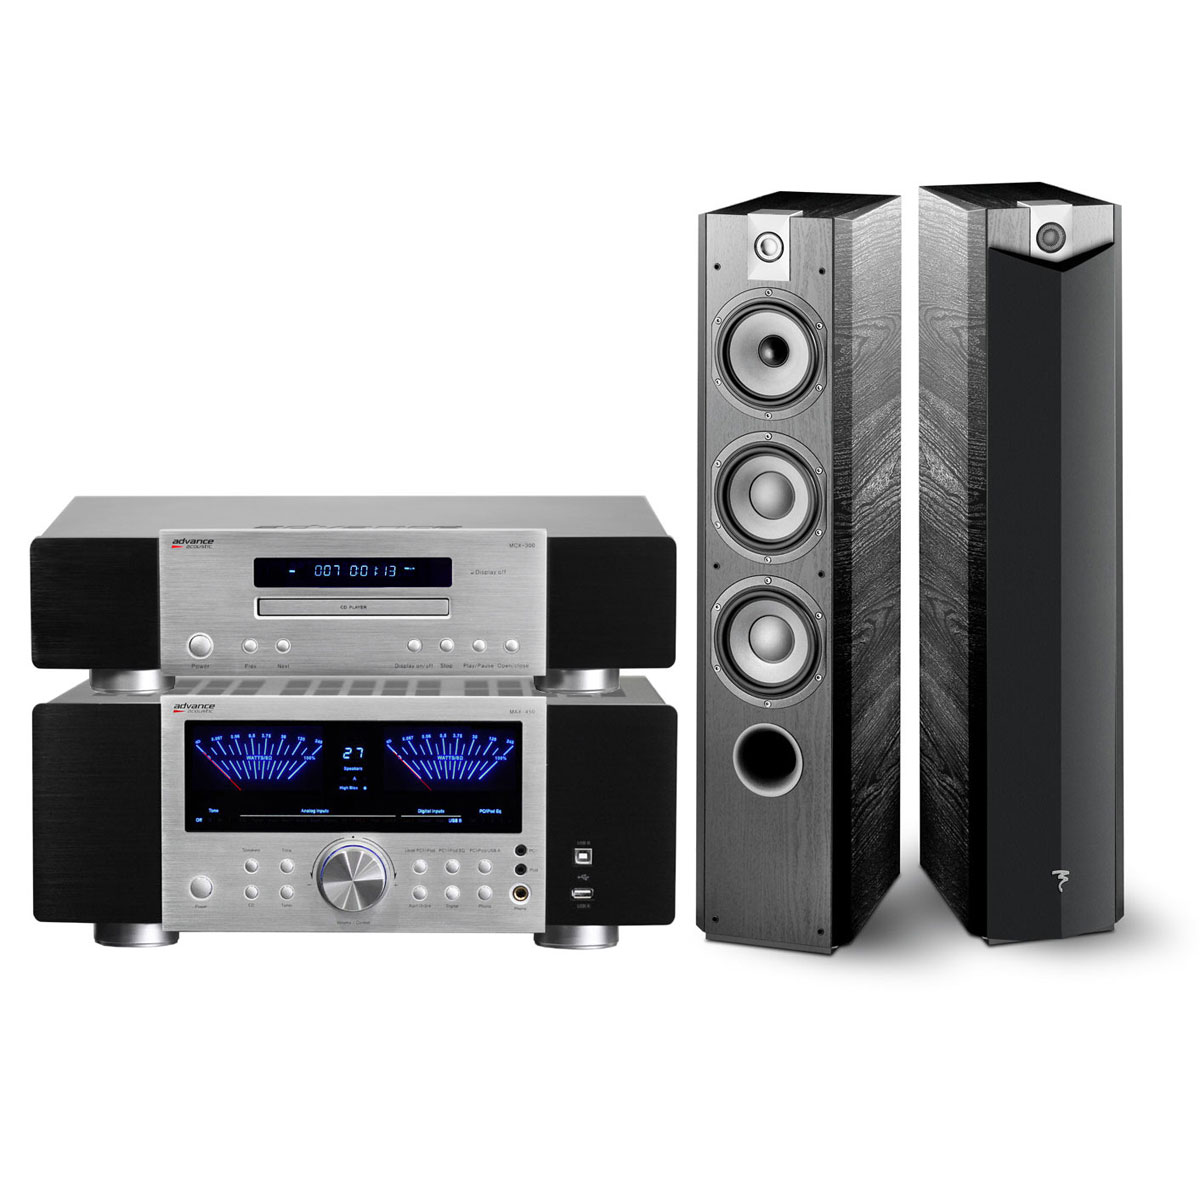 advance acoustic max 450 bs dac mcx 300 bs 2x. Black Bedroom Furniture Sets. Home Design Ideas